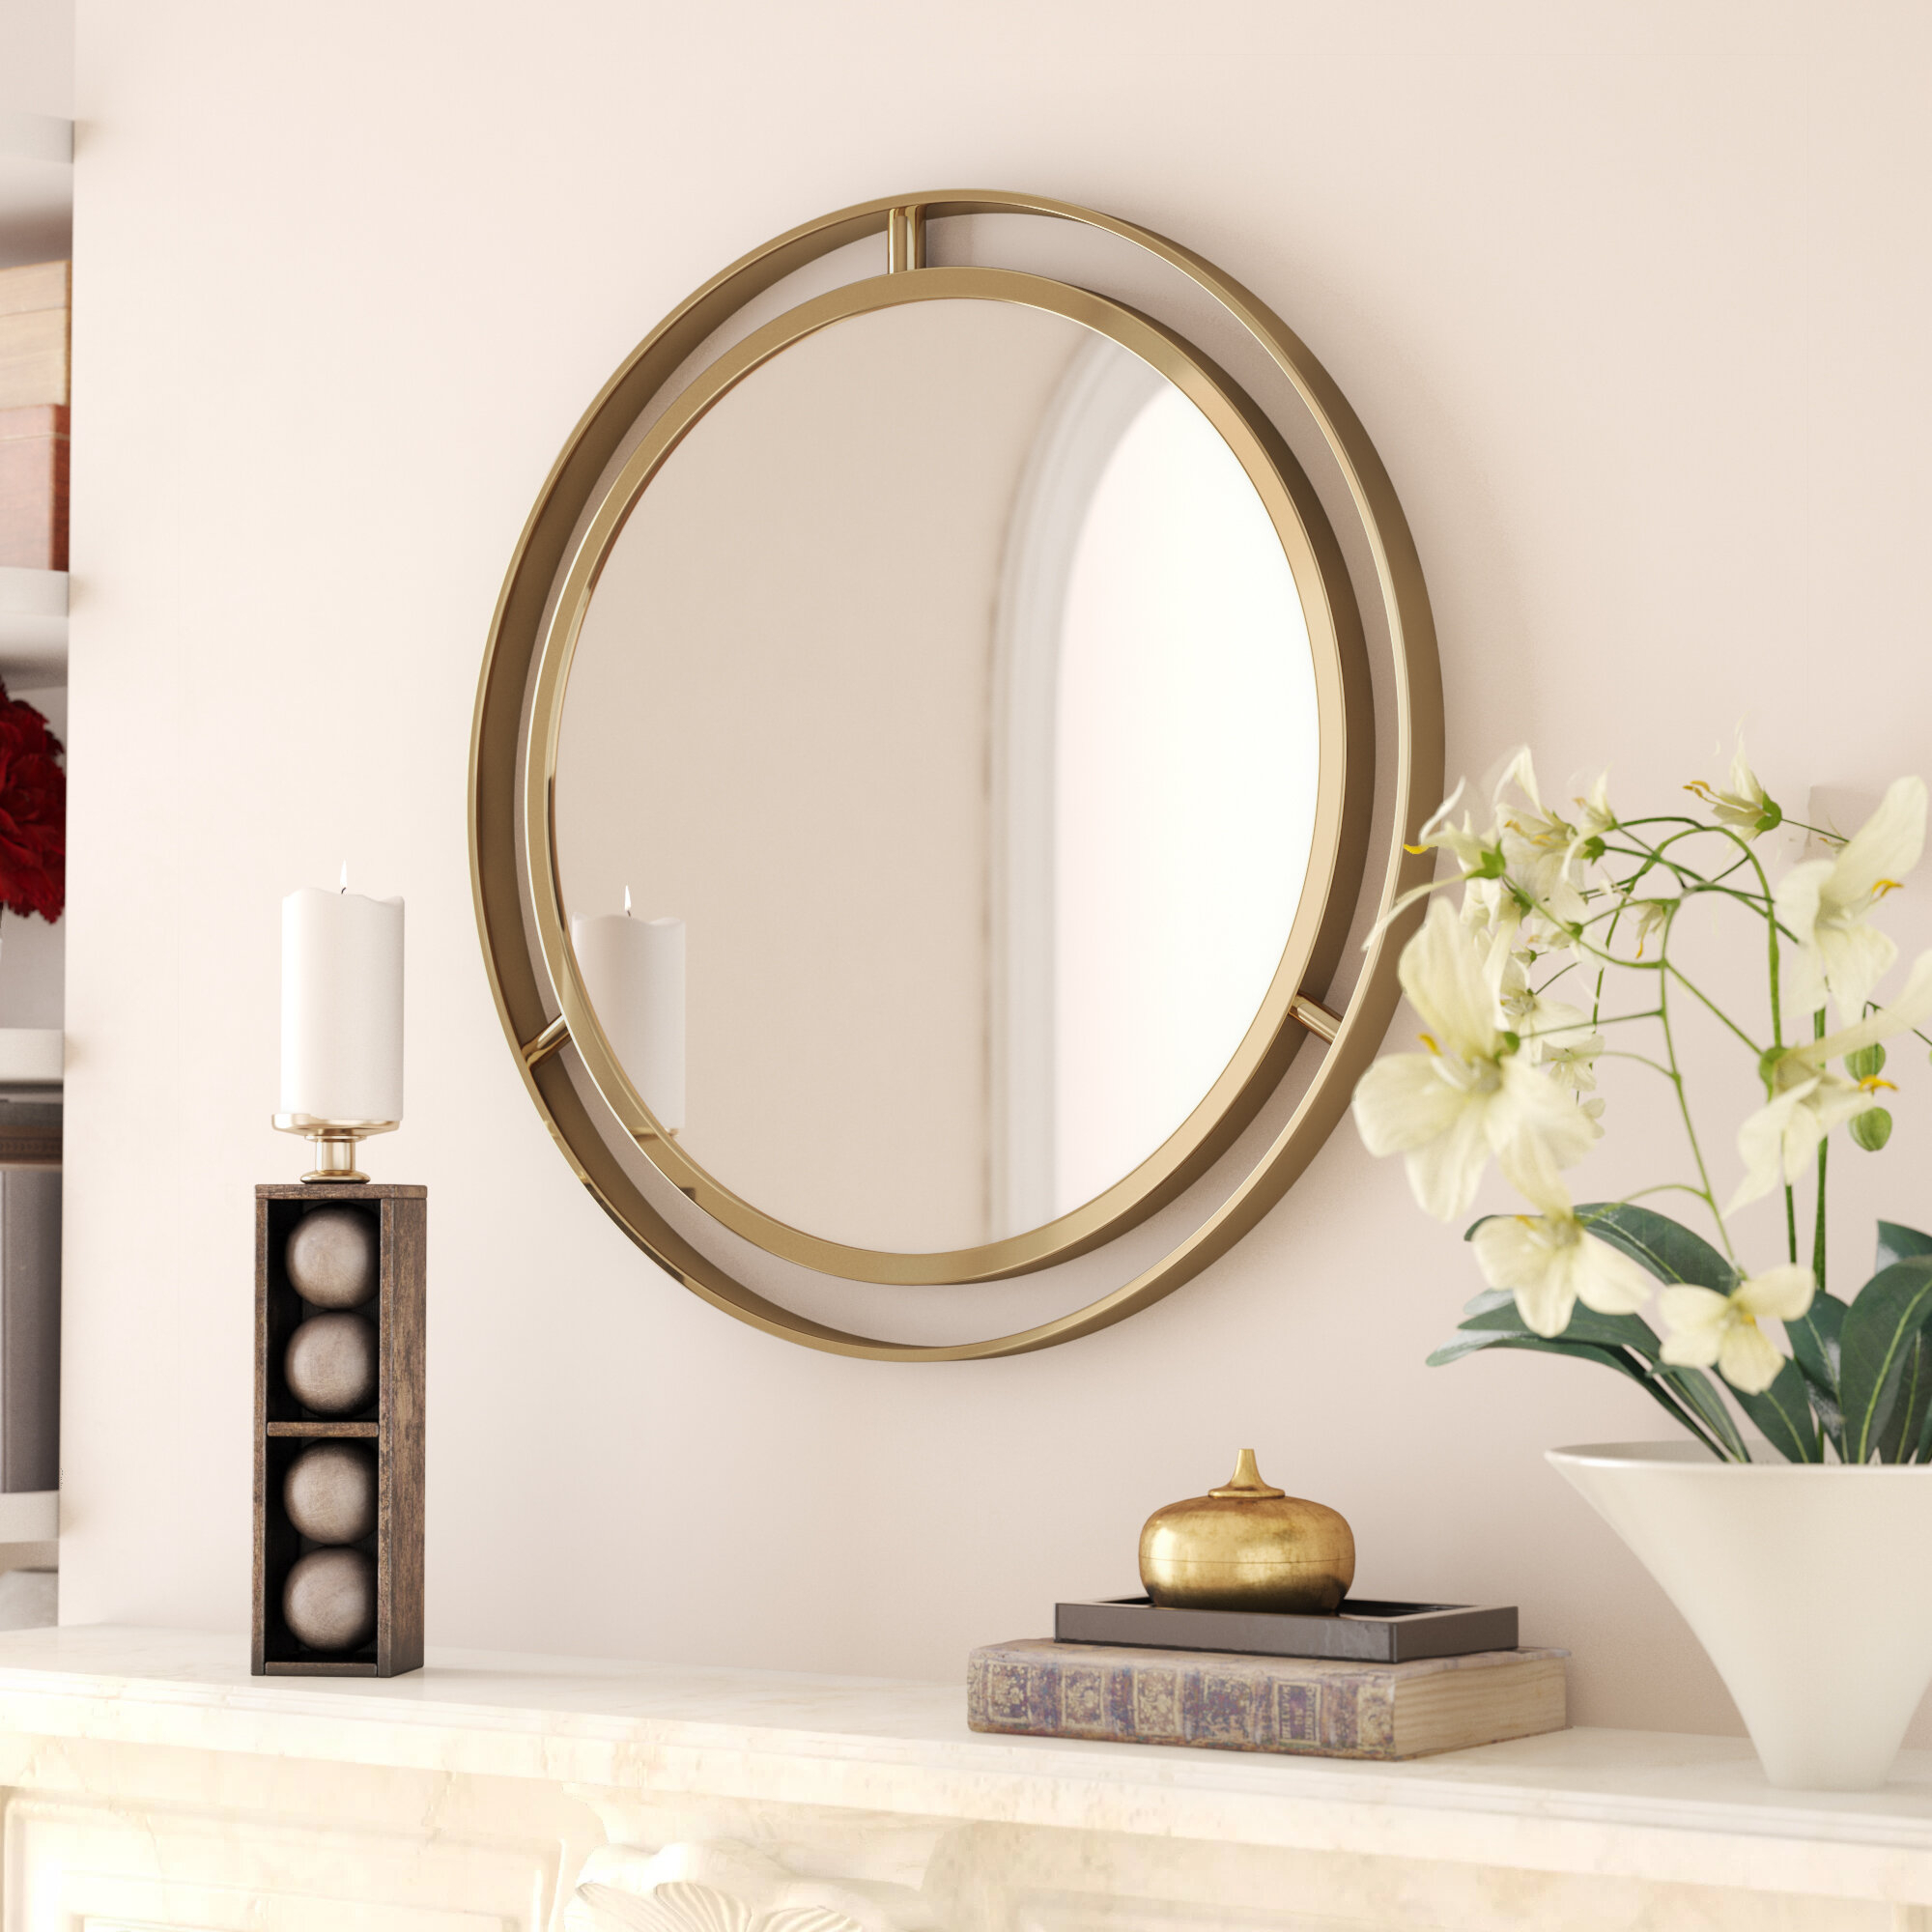 Gold Round Mirrors You'll Love In 2019 | Wayfair In Harbert Modern And Contemporary Distressed Accent Mirrors (Image 6 of 20)